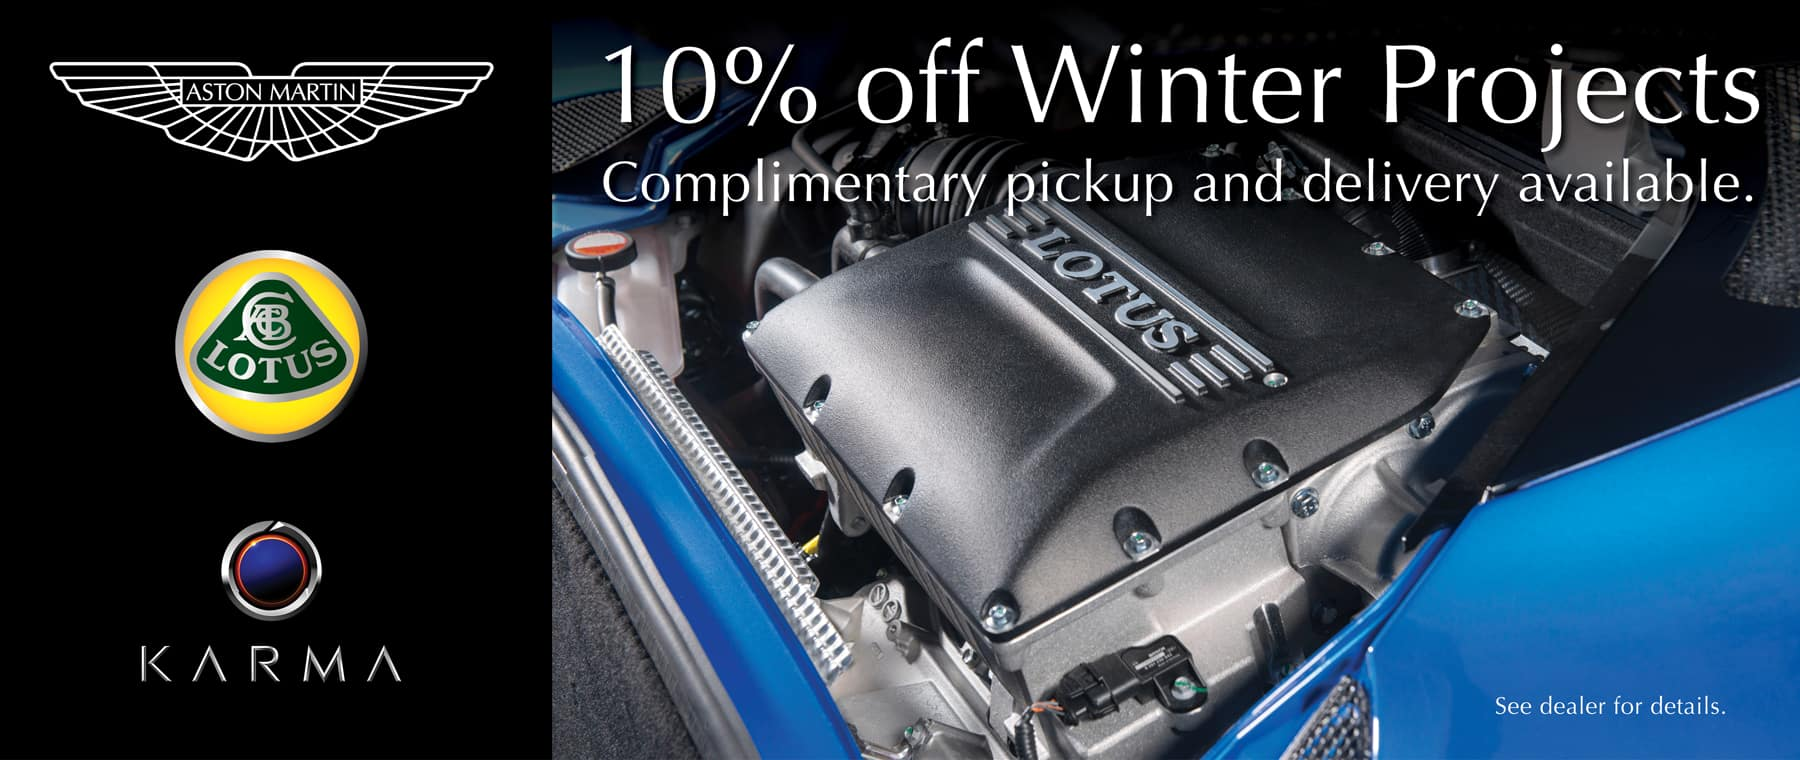 10% off winter projects